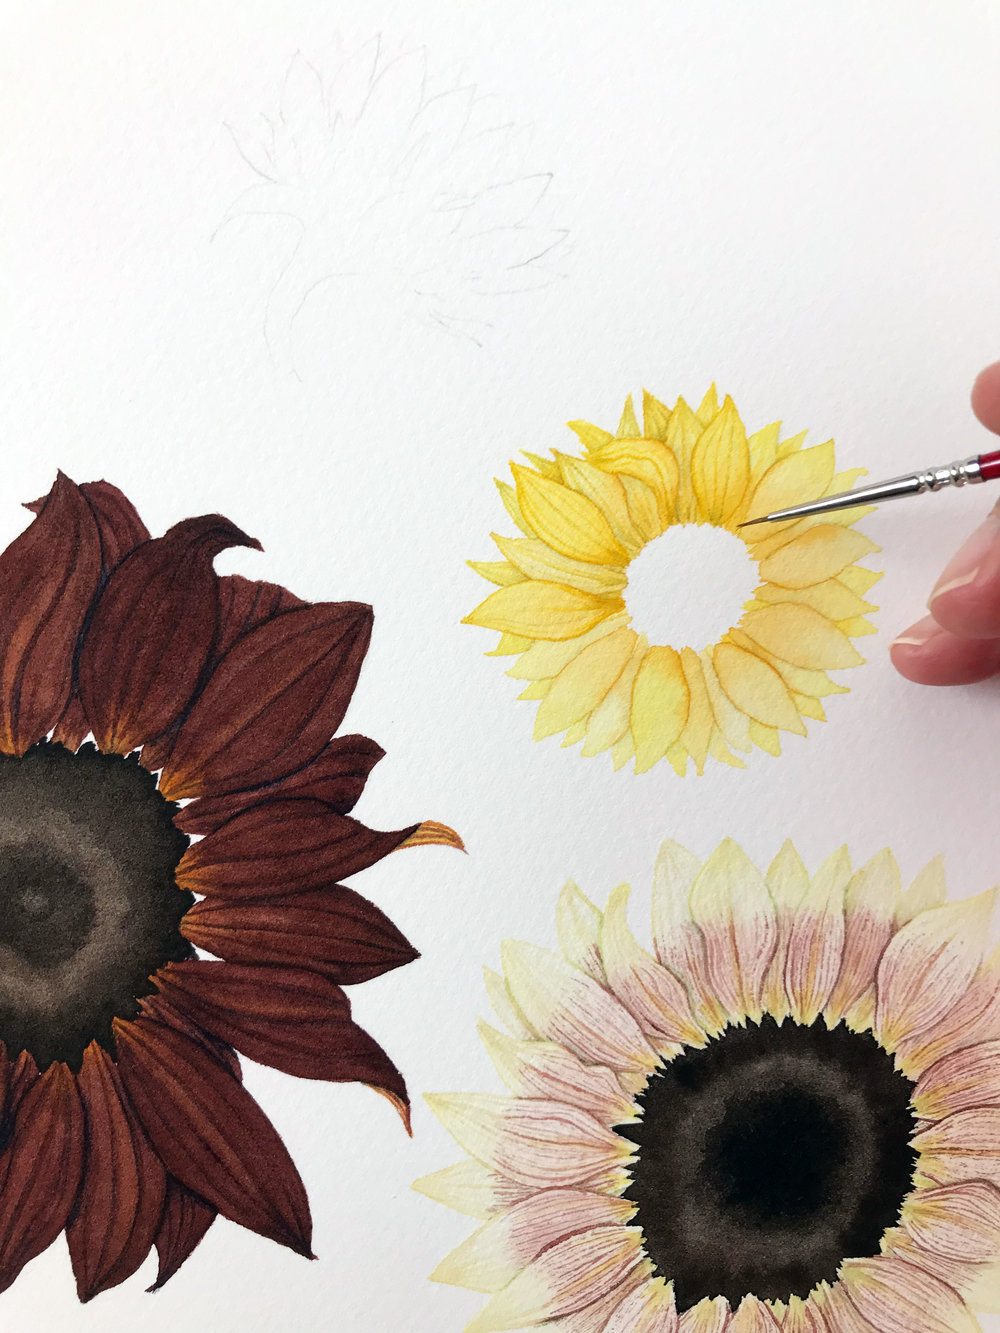 Notice the Difference Between the Petals That Have Gotten Details and Those That Have Not in this In-Progress Sunflower Watercolor Painting